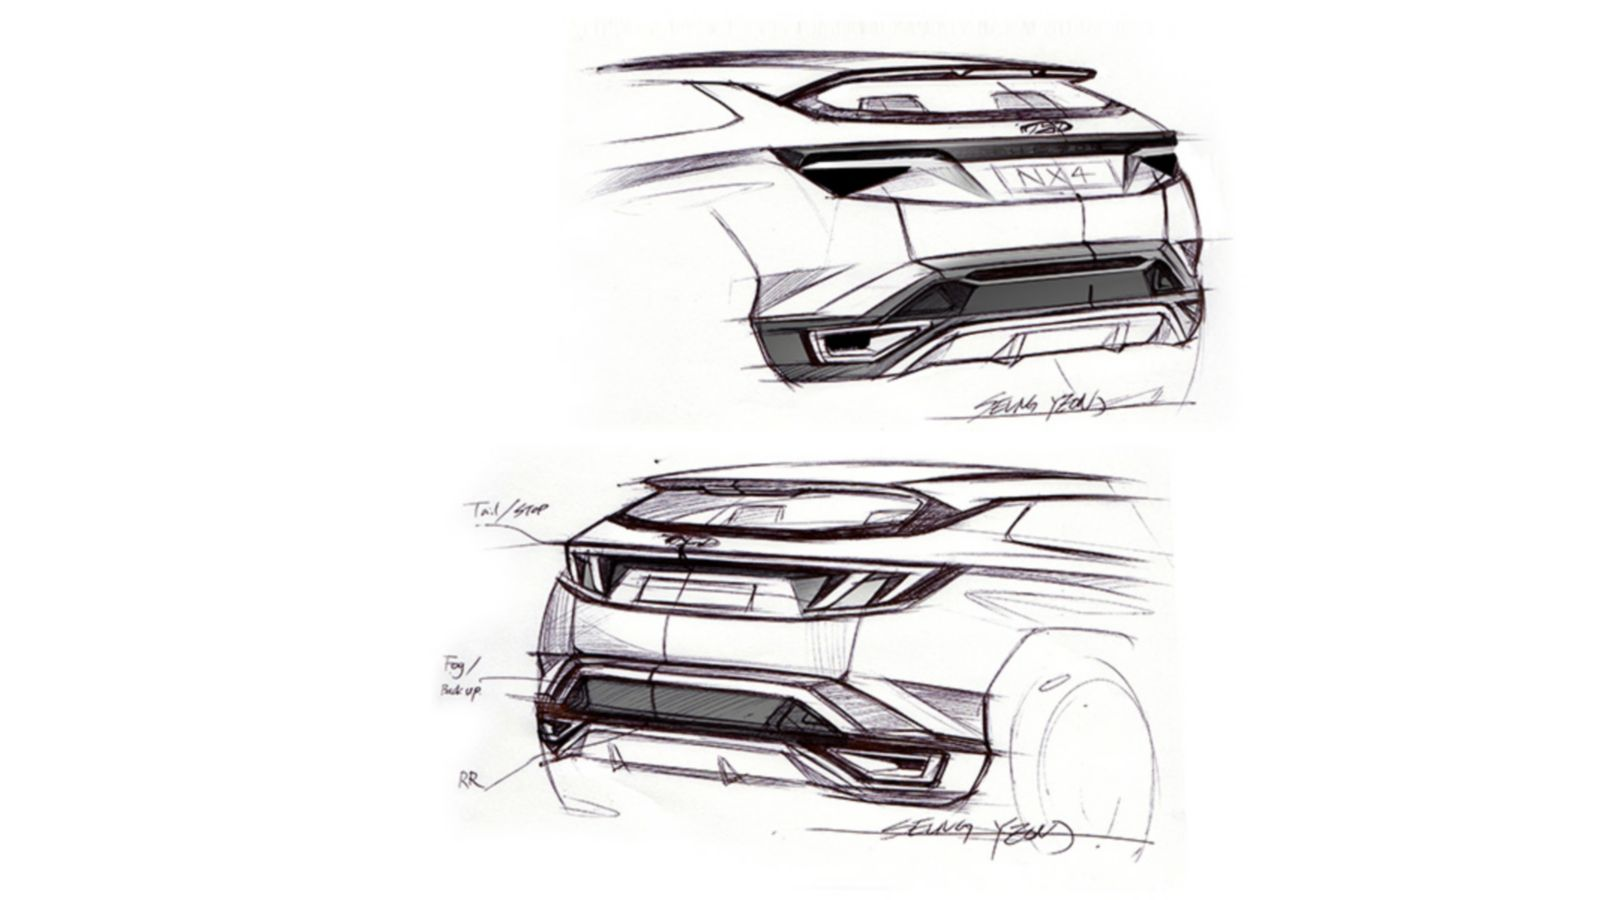 Design sketch of the all-new Hyundai Tucson compact SUV pictured from the rear.